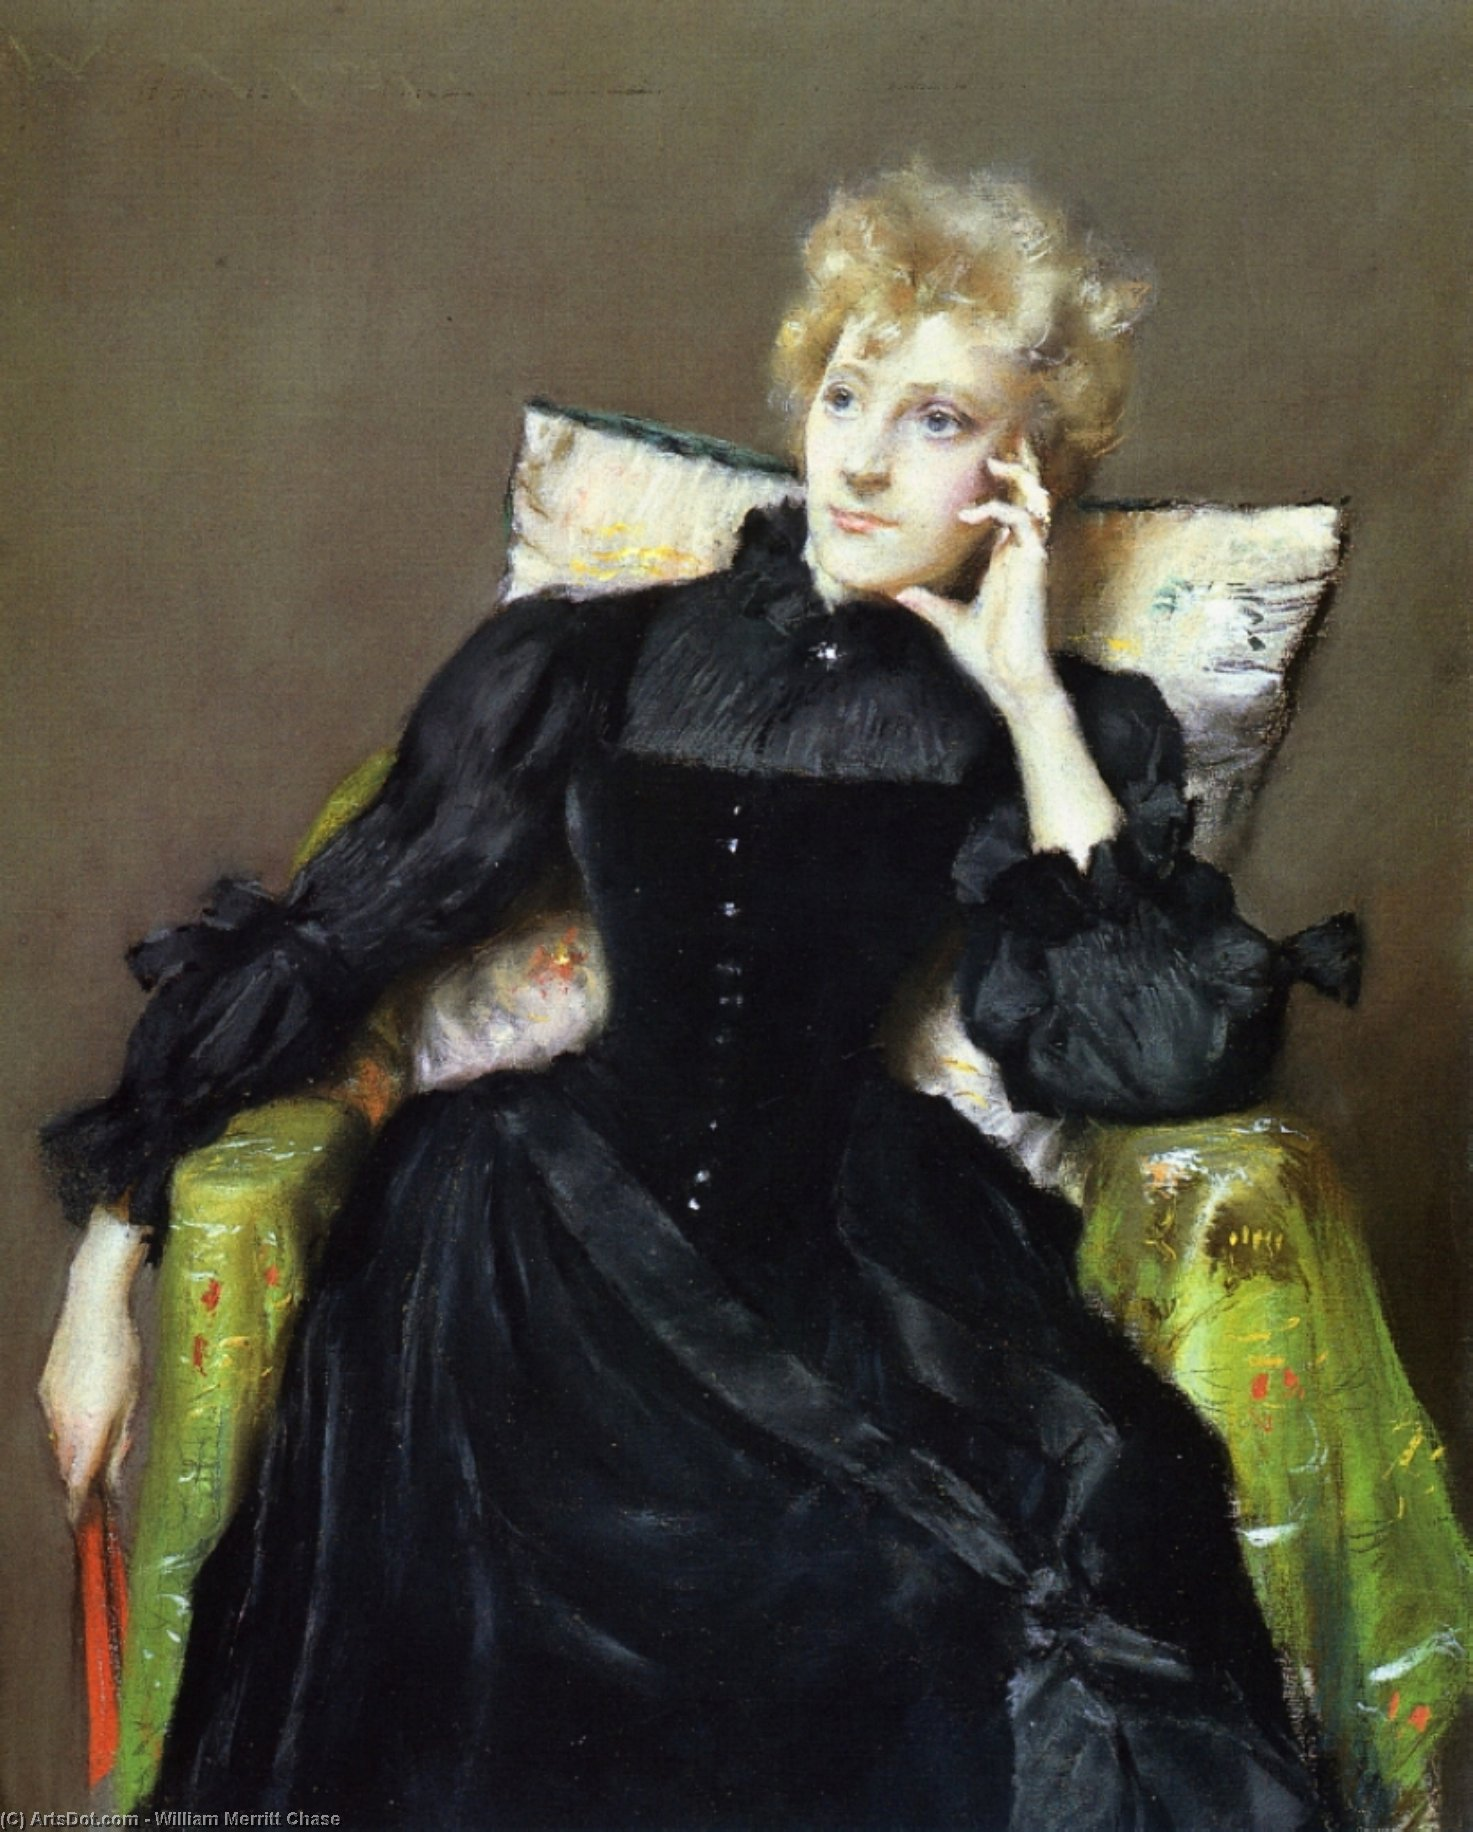 femme assise en noir robe, Pastel sec de William Merritt Chase (1849-1916, United States)